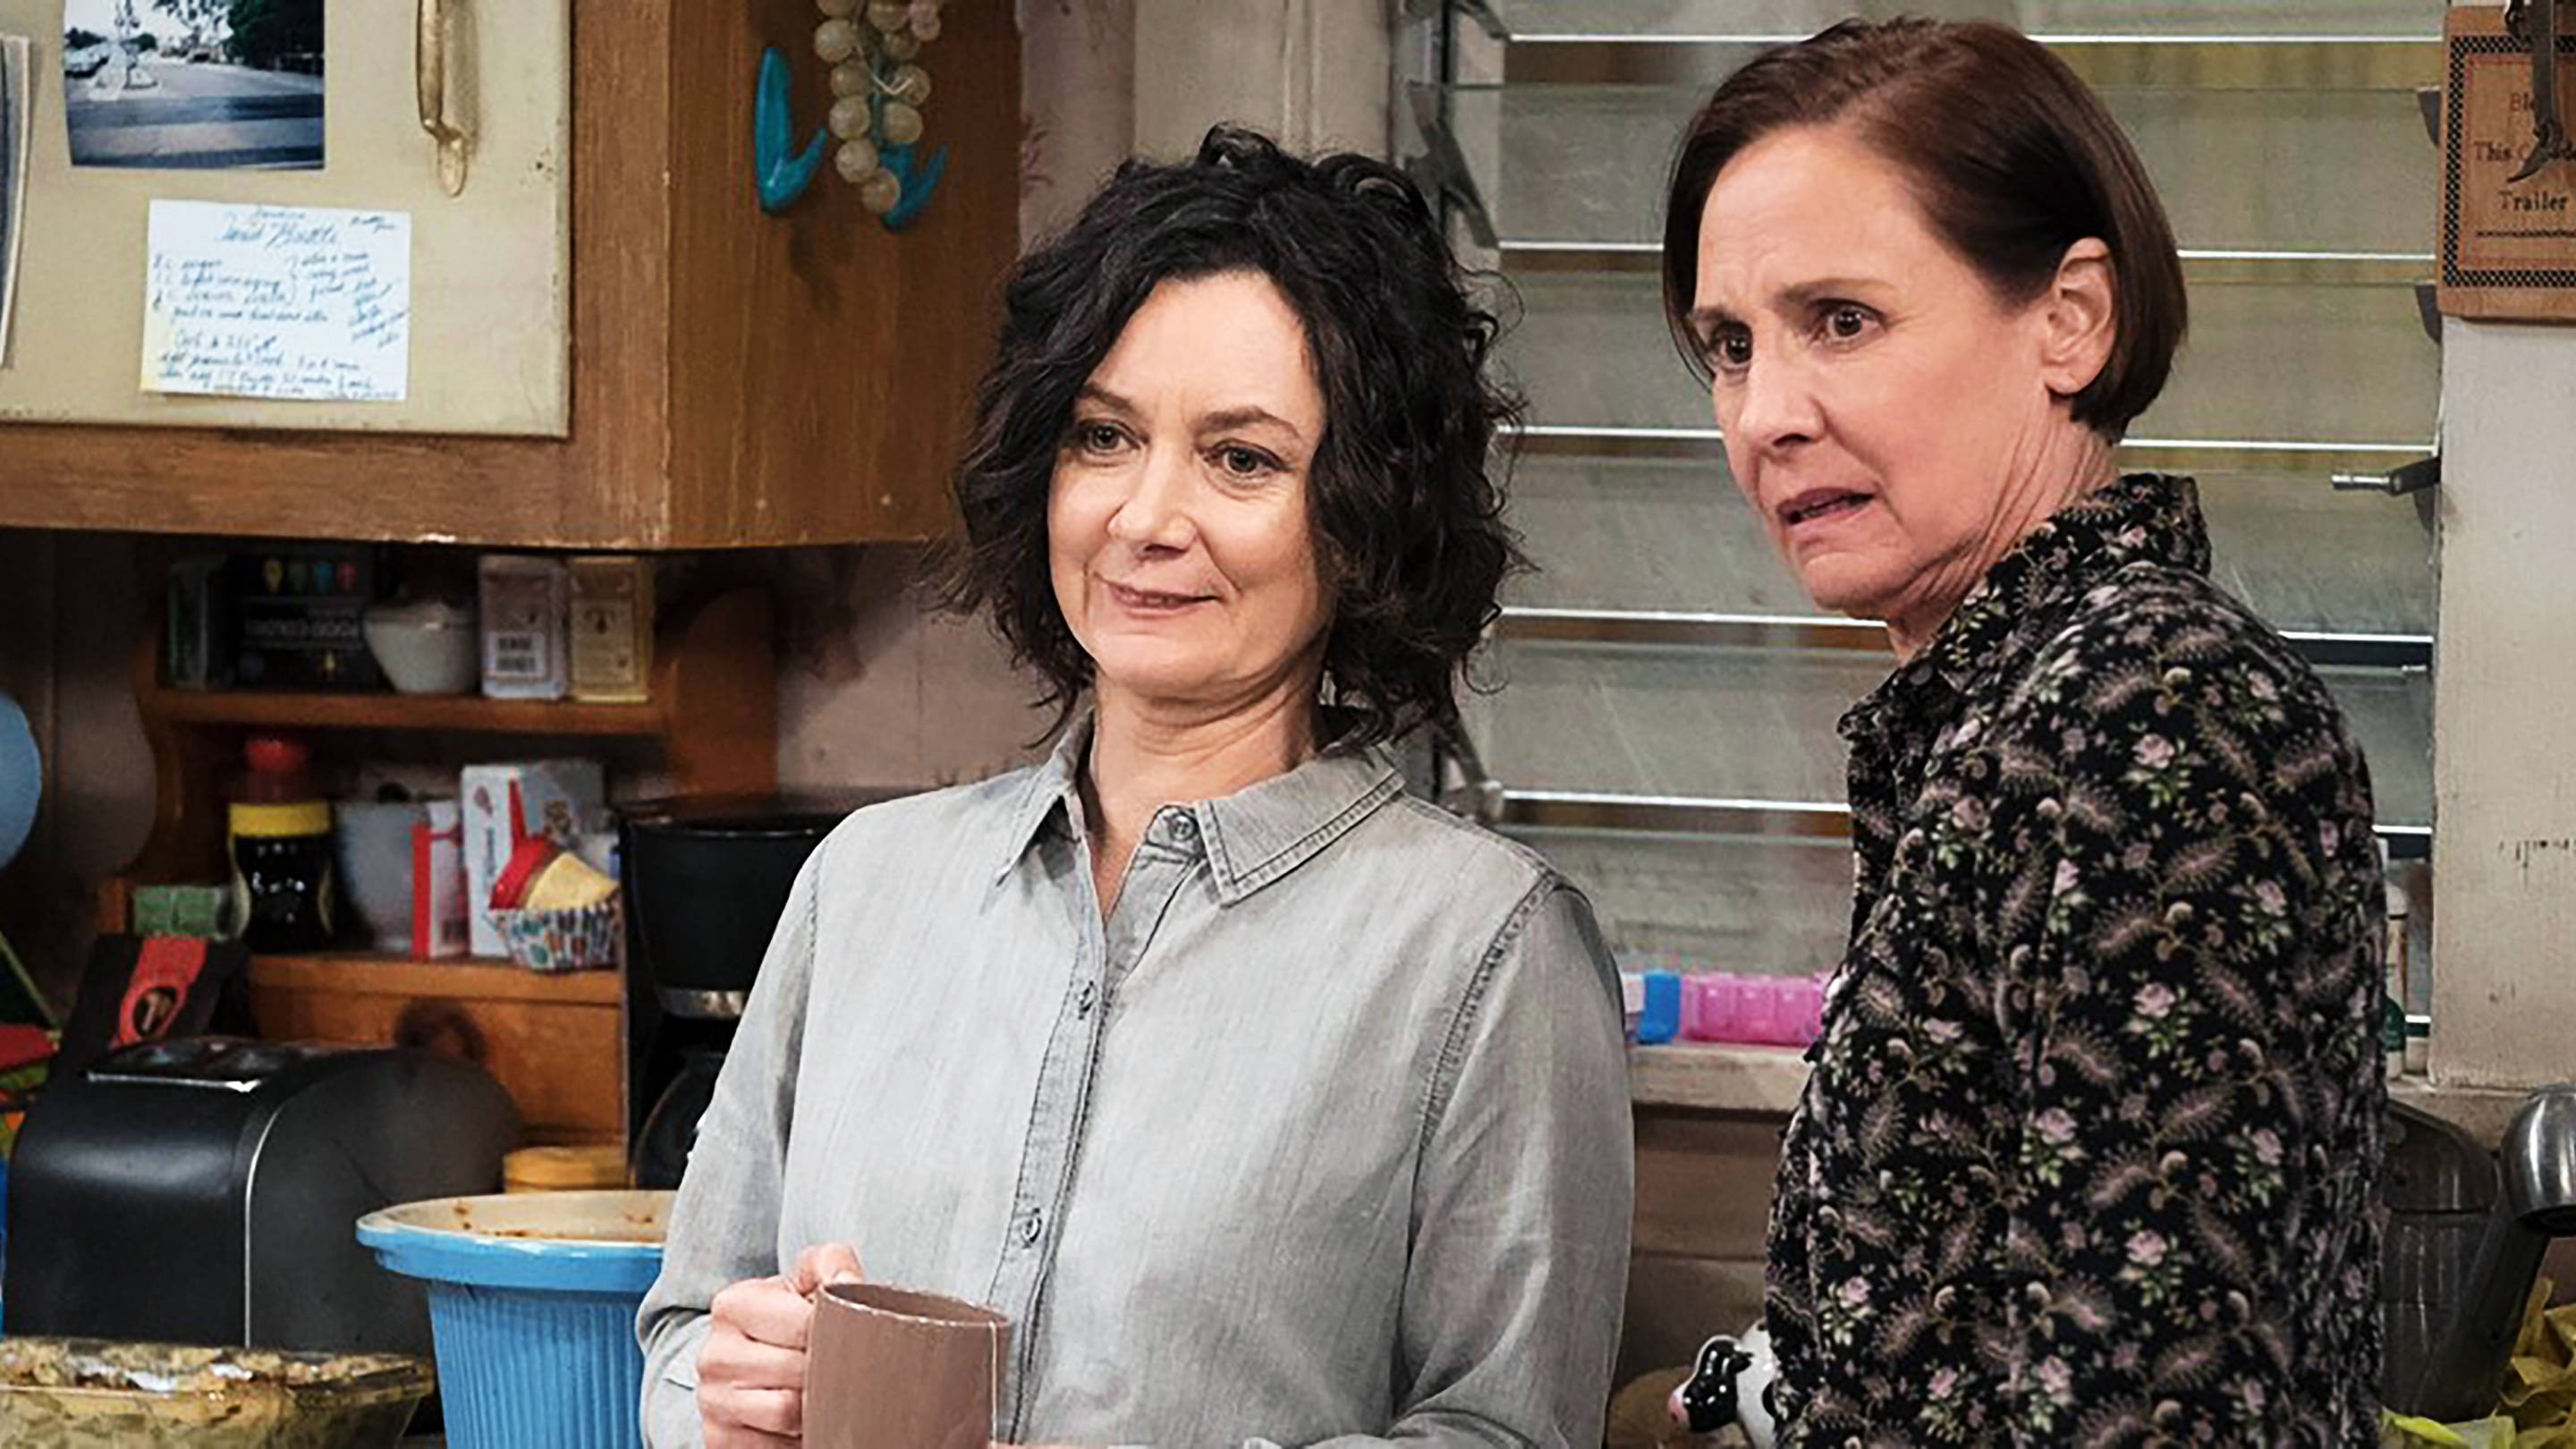 Roseanne's death on 'The Conners' premiere